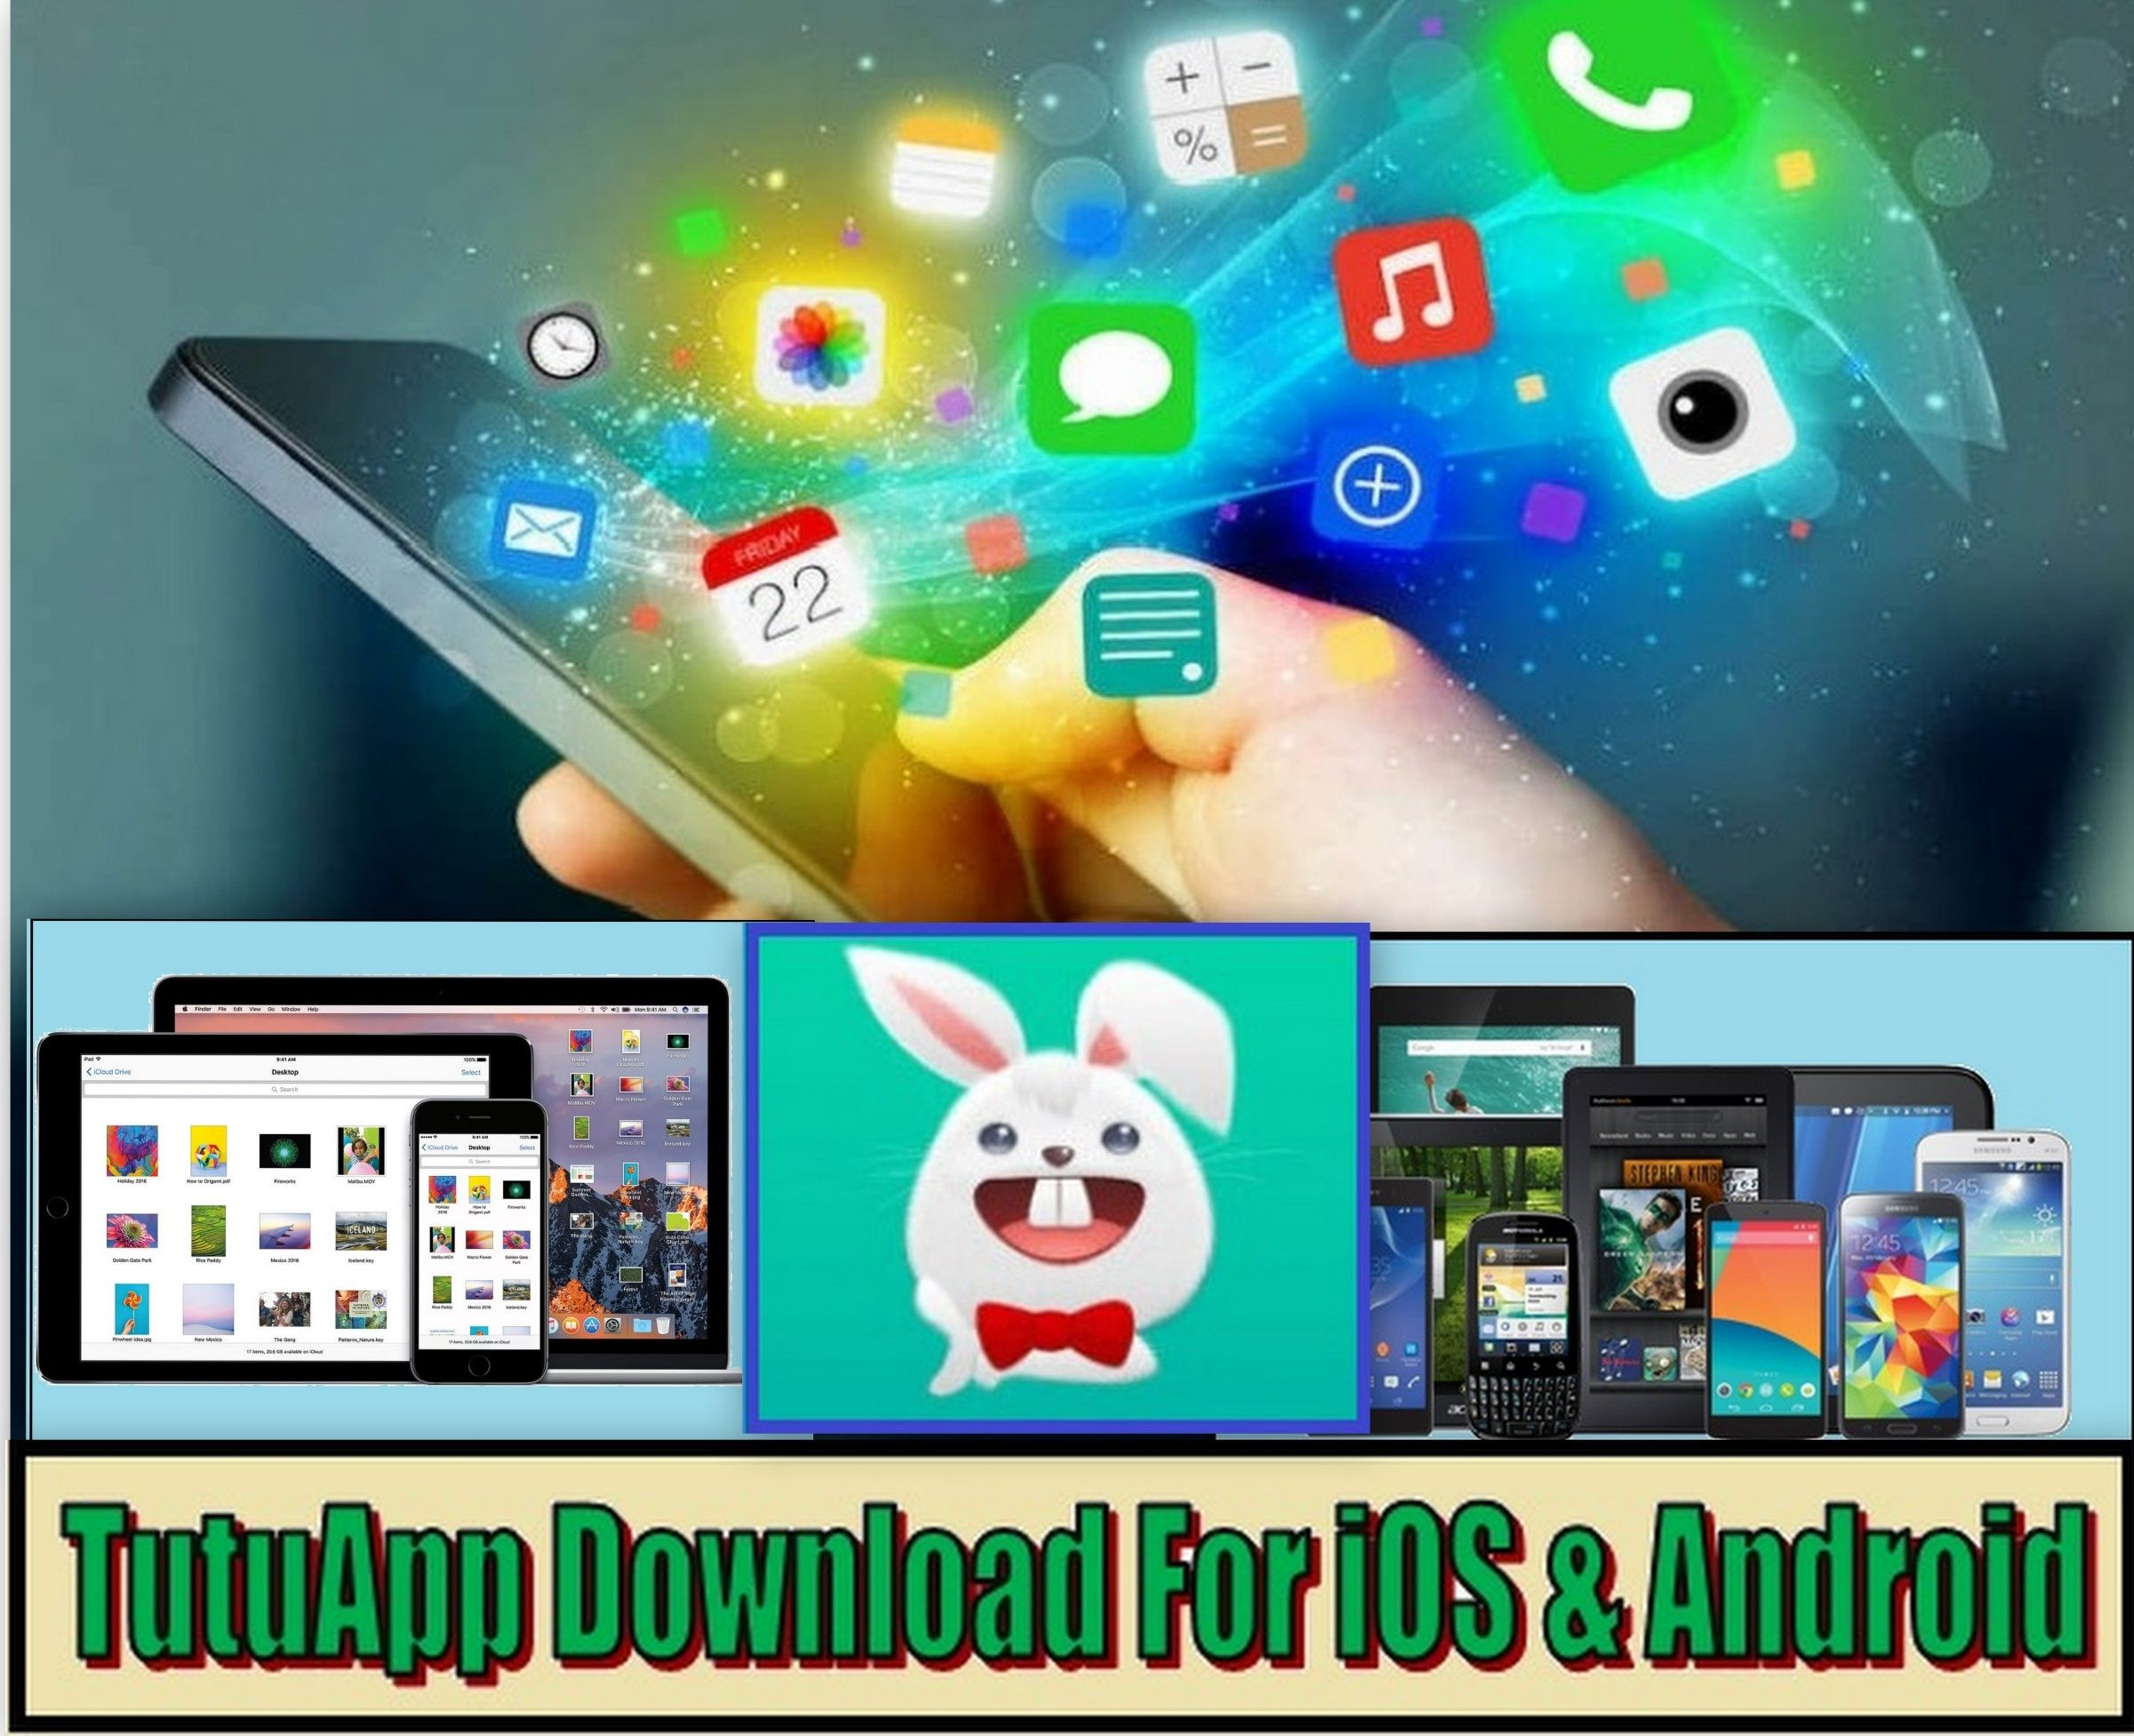 TutuApp is one of the best Appstore for iOS & Android Users It